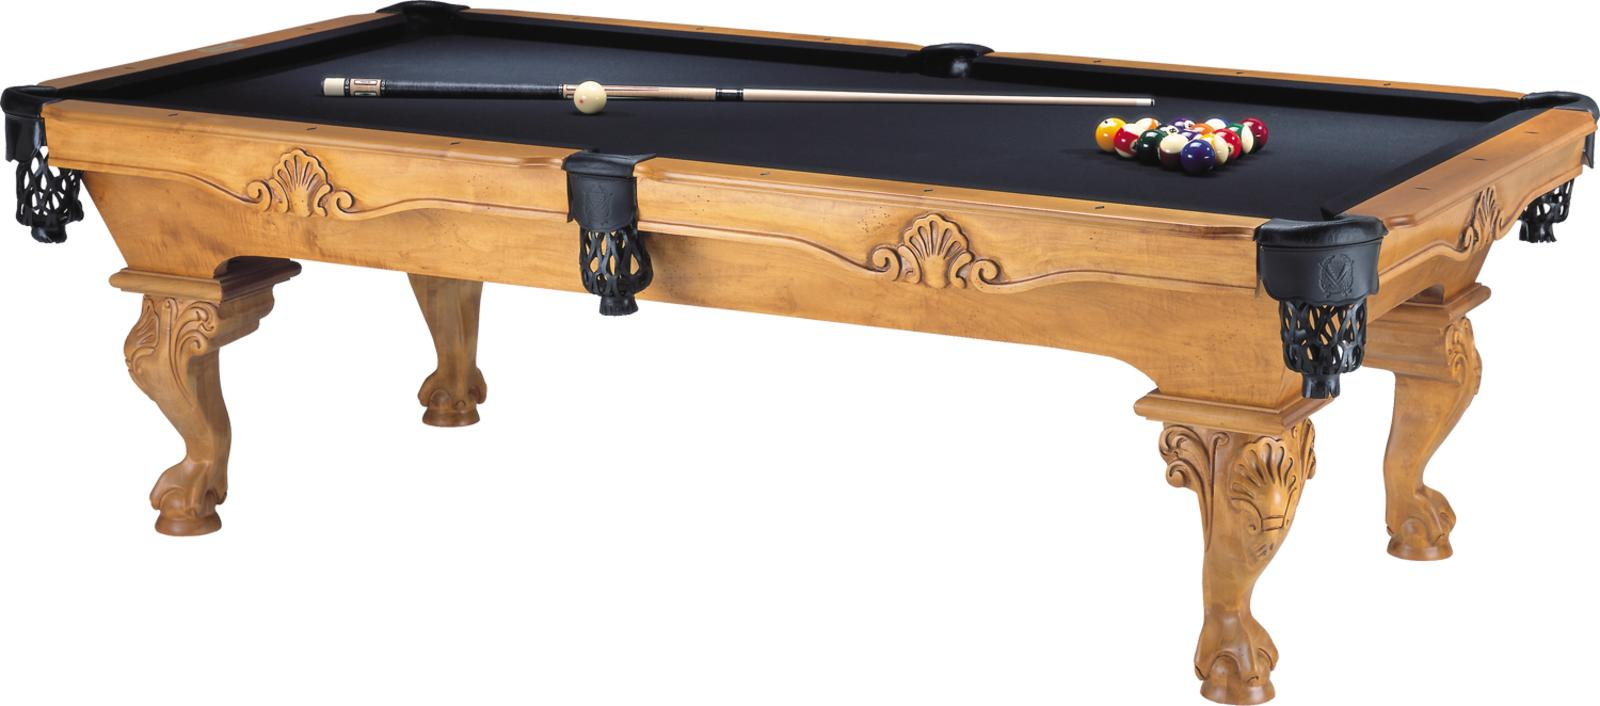 Winslow austin billiards austin texas 39 premier pool table retailer - Photos of pool tables ...